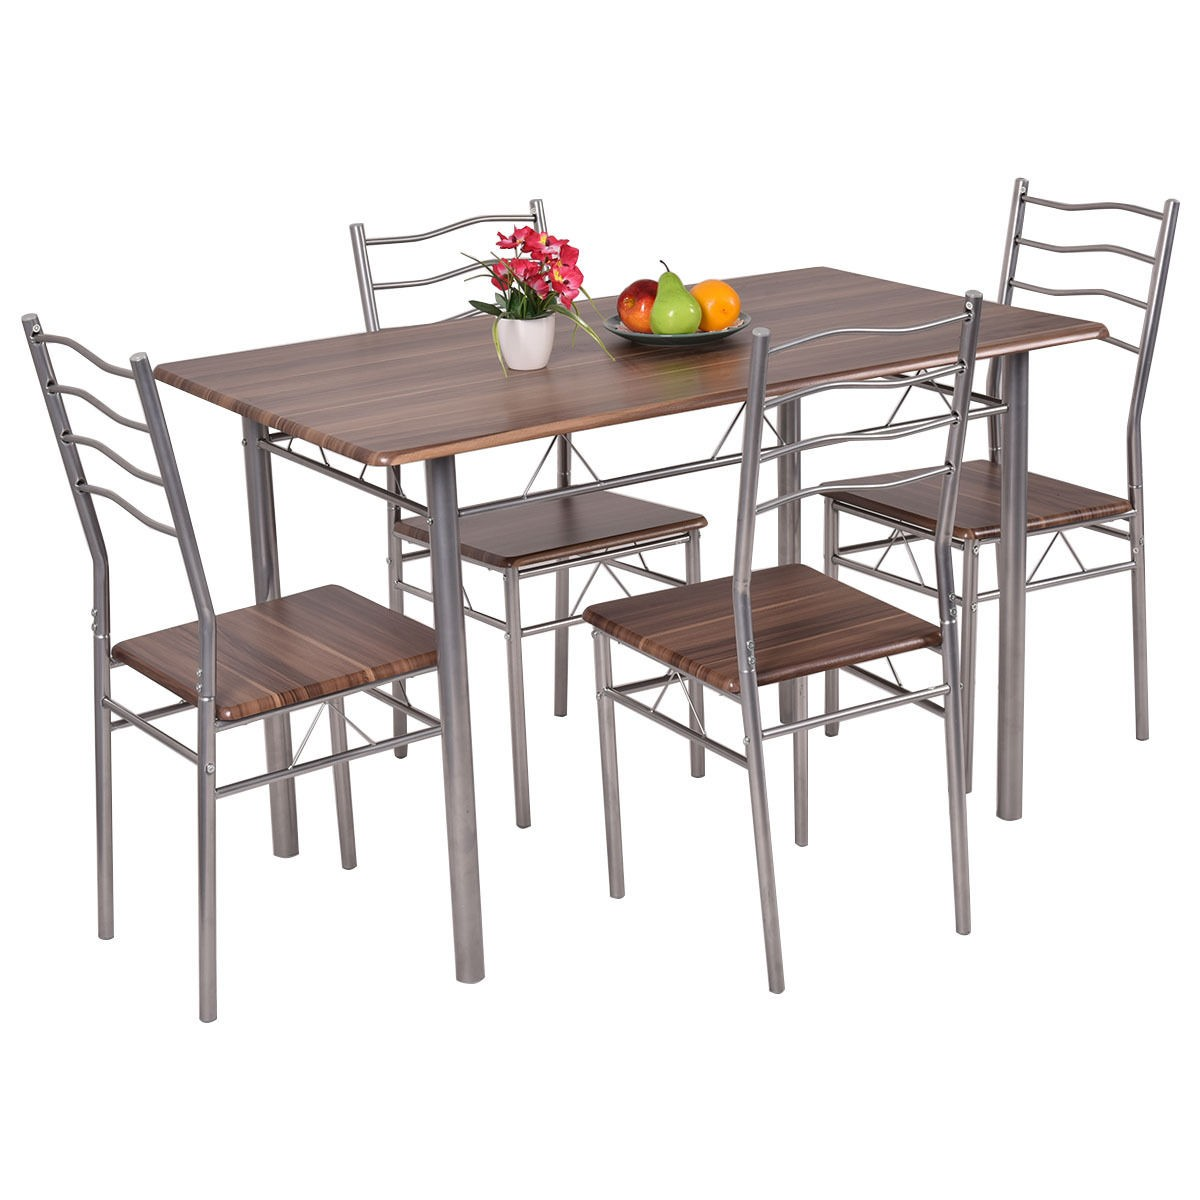 5 piece dining set wood metal table and 4 chairs kitchen for Kitchen table and chairs